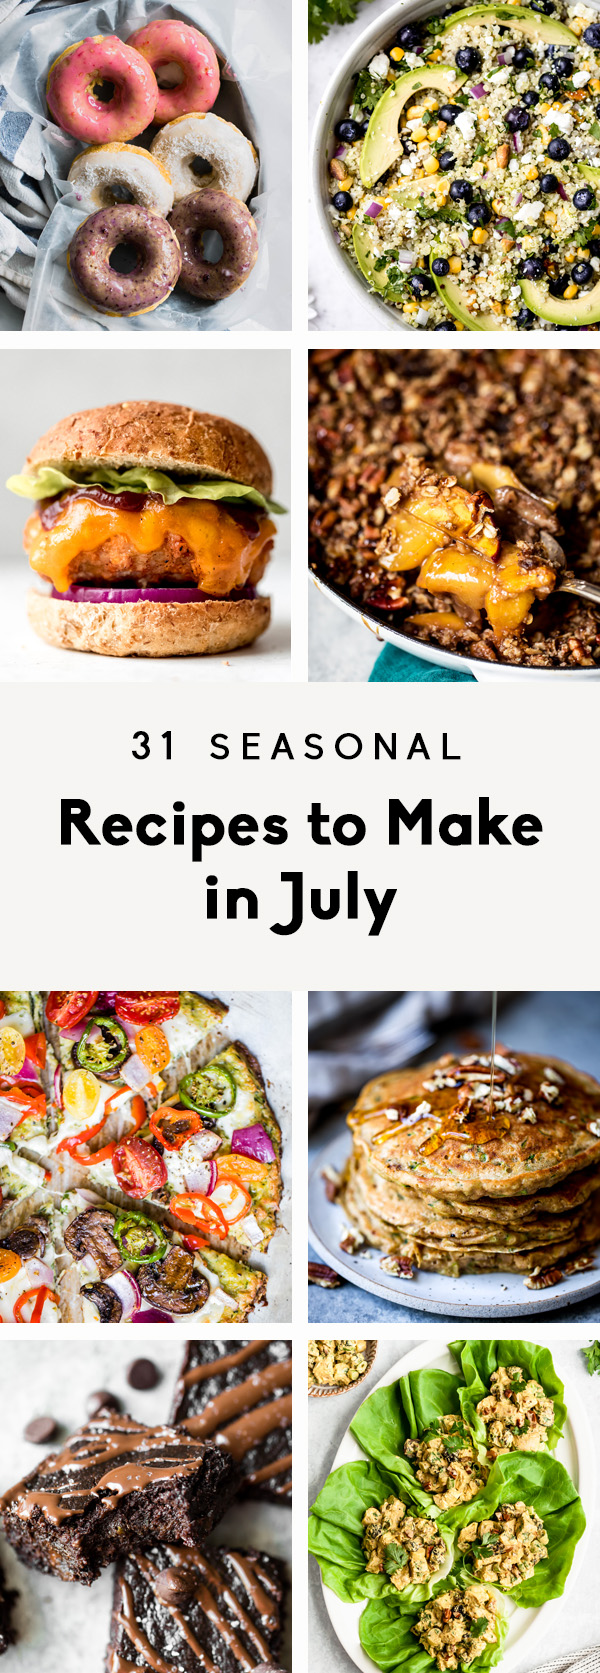 collage of seasonal recipes to cook in july with text overlay